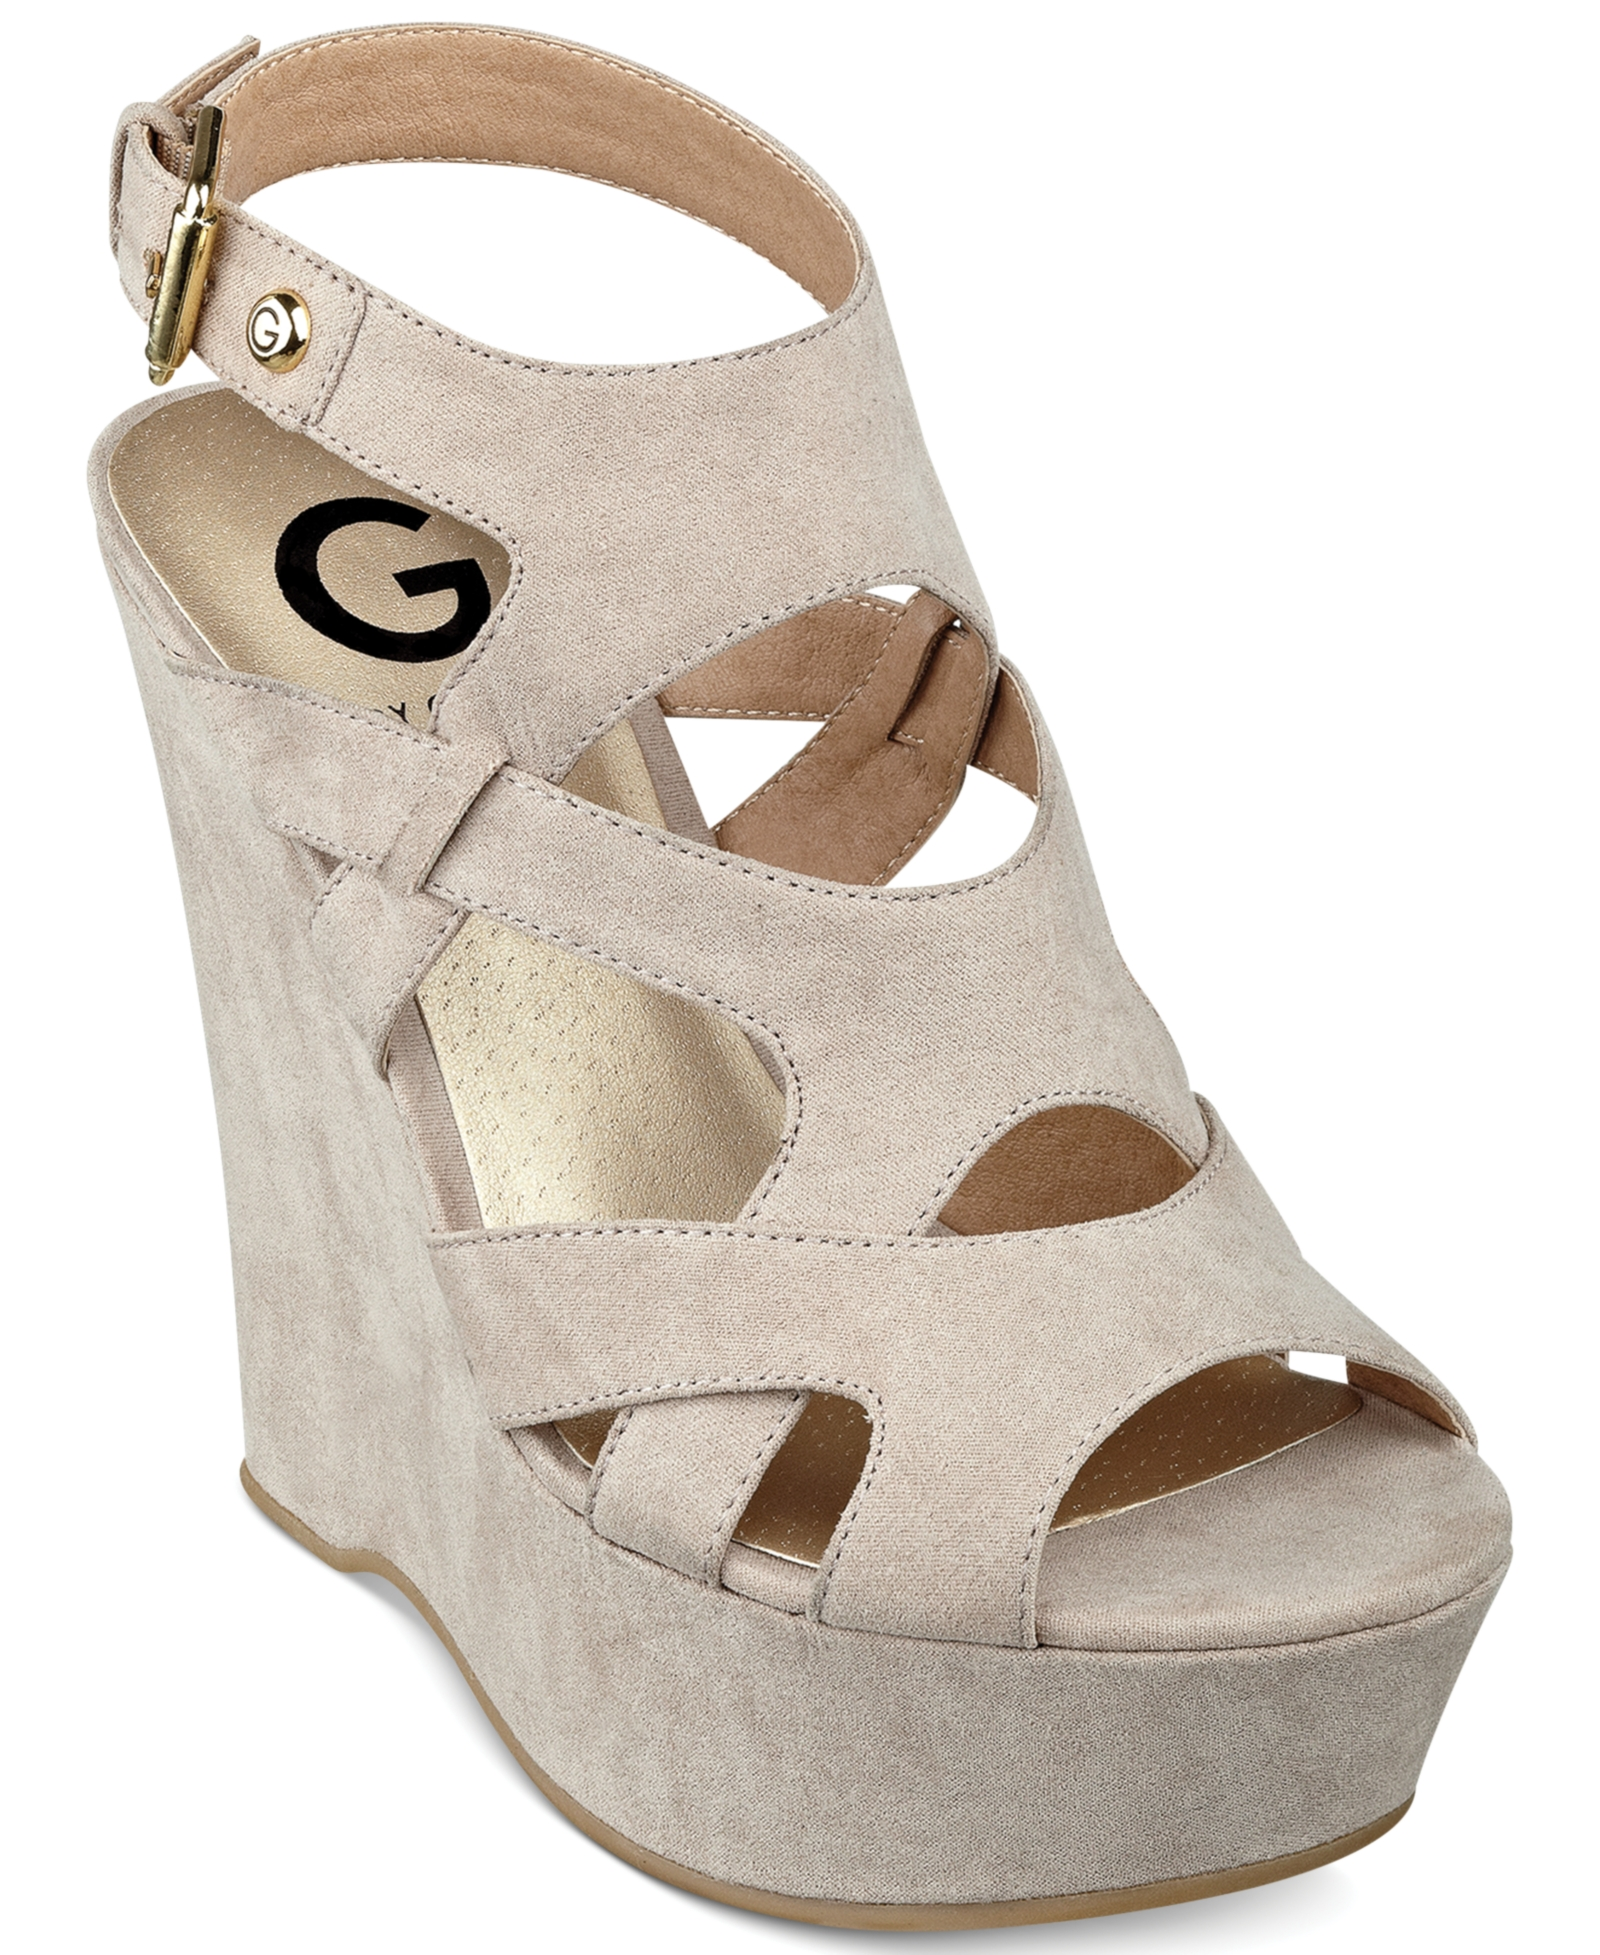 7f790dd93 G by Guess Women's Hizza Platform Wedge Sandals Women's Shoes | G By Guess  | Shoe.Net